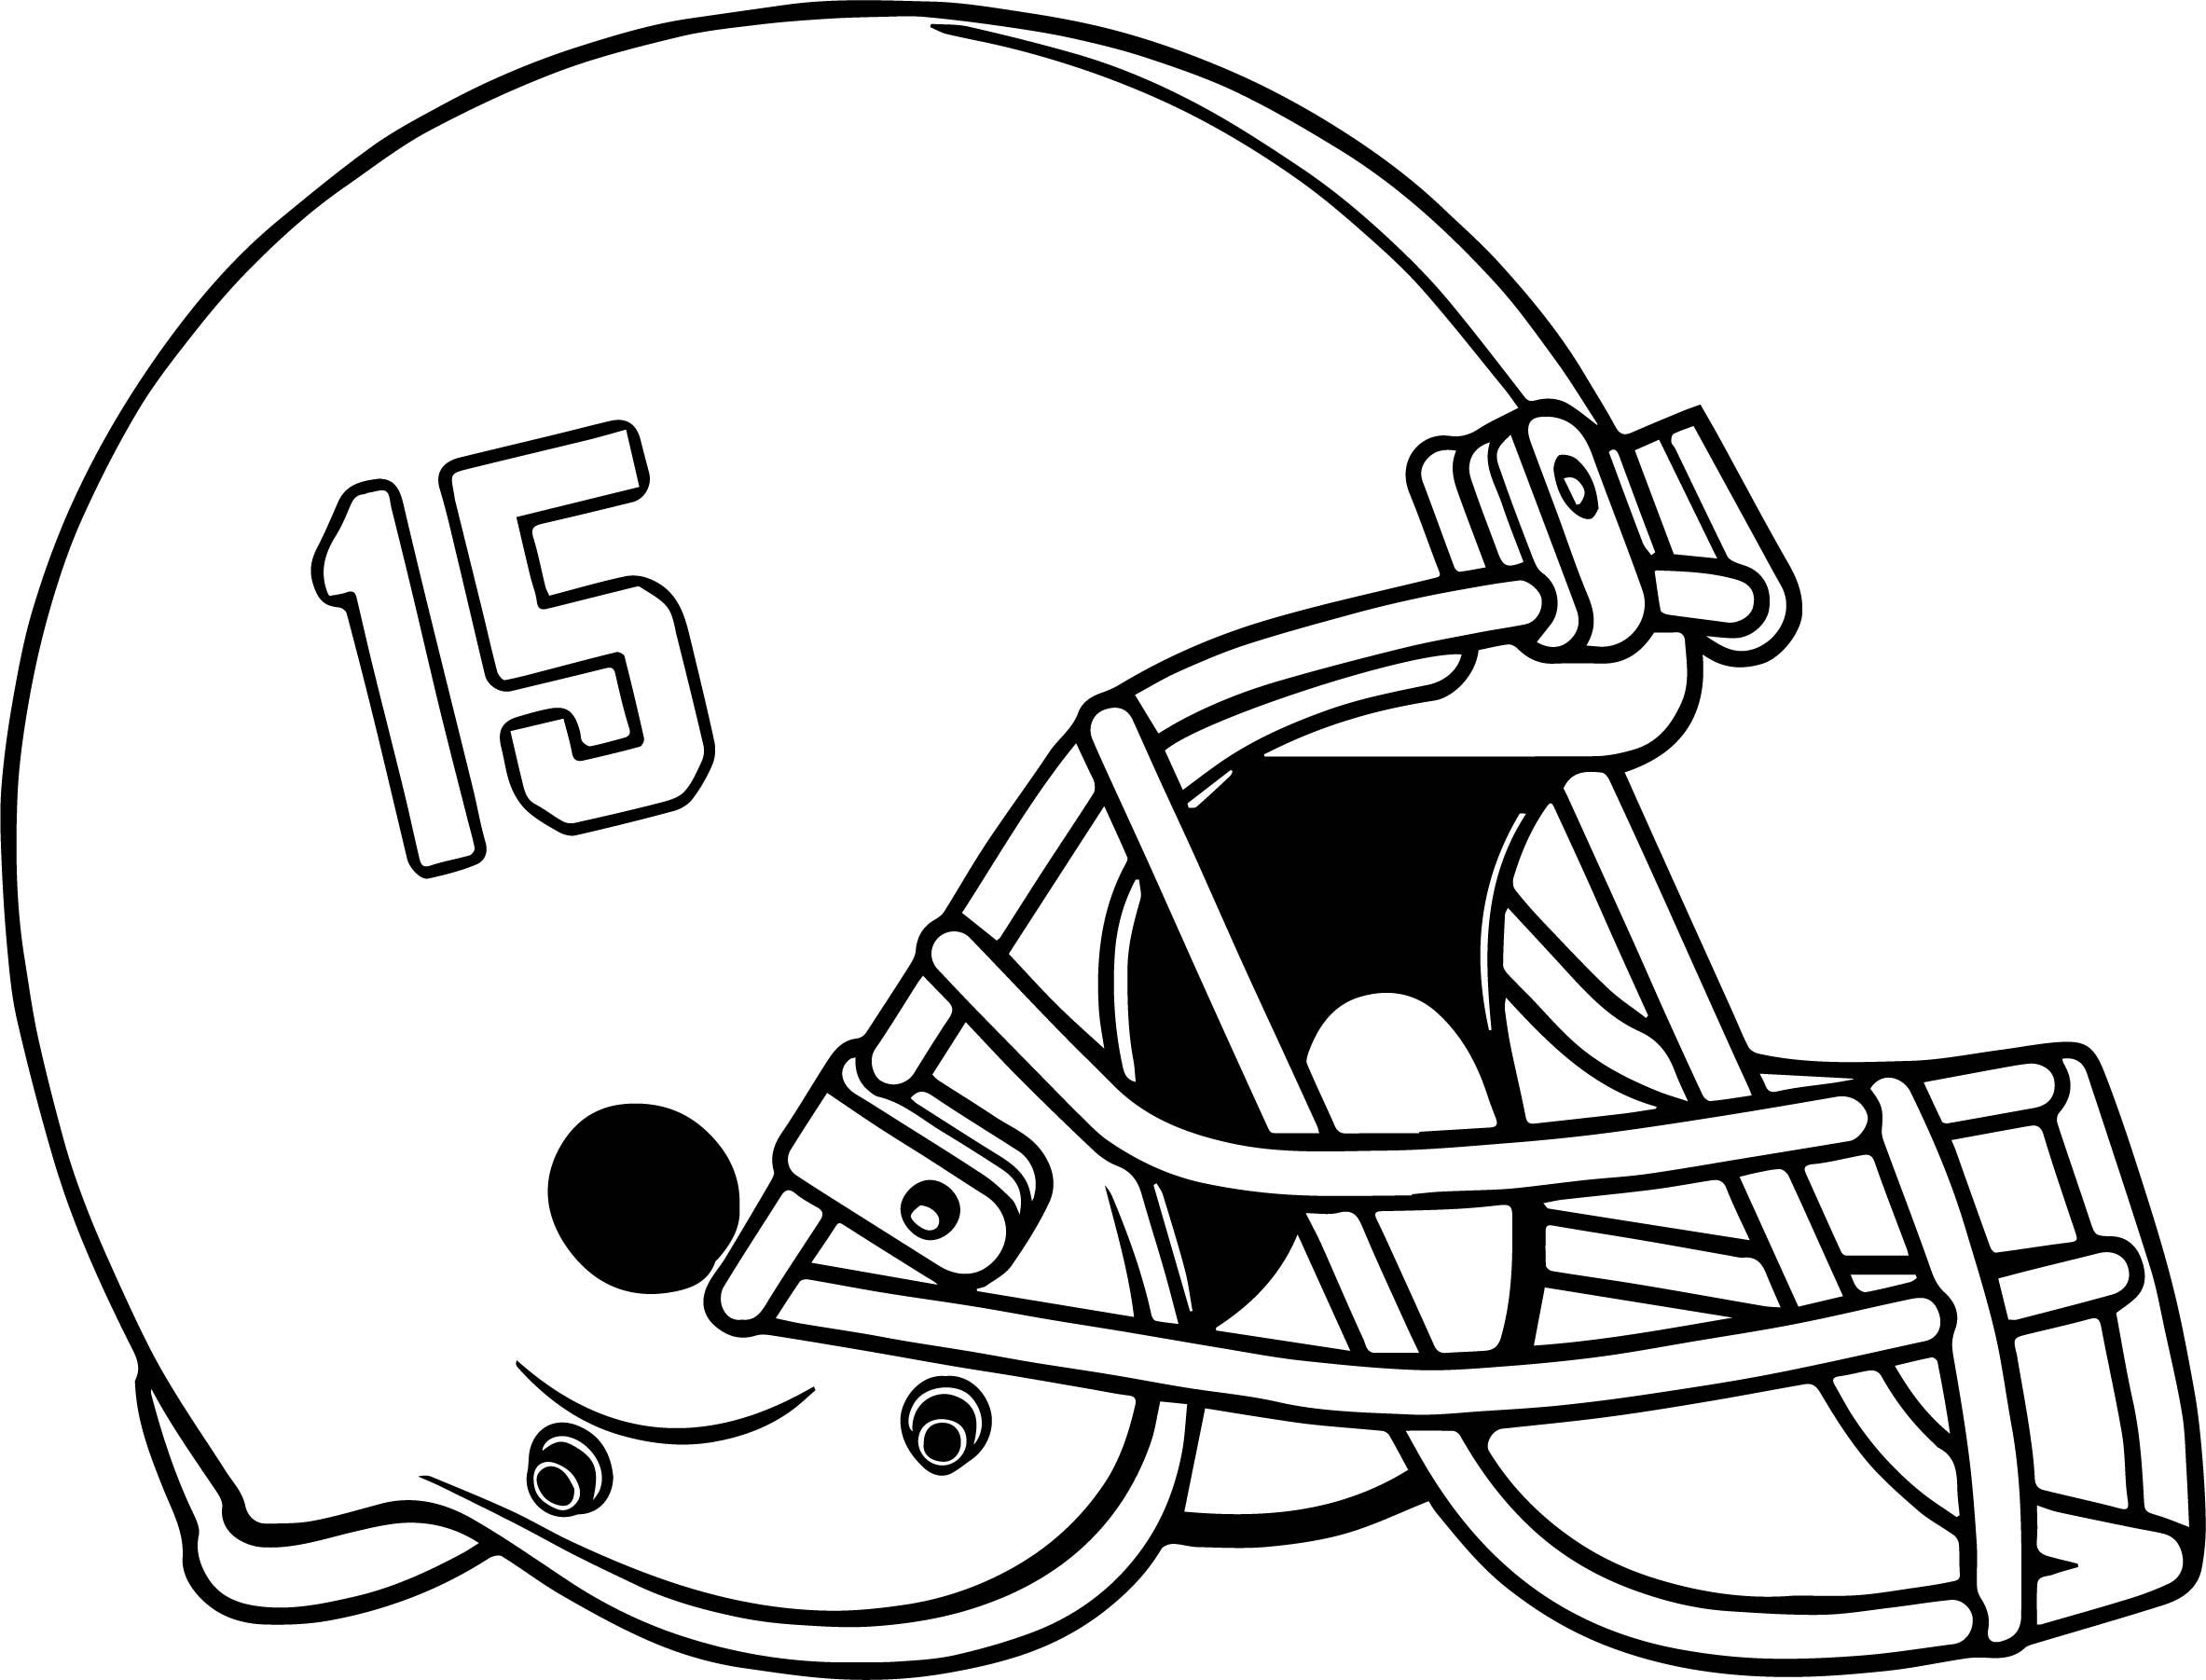 Bama Alabama Helmet Fifteen Number Coloring Page Football Coloring Pages College Football Logos Football Logo